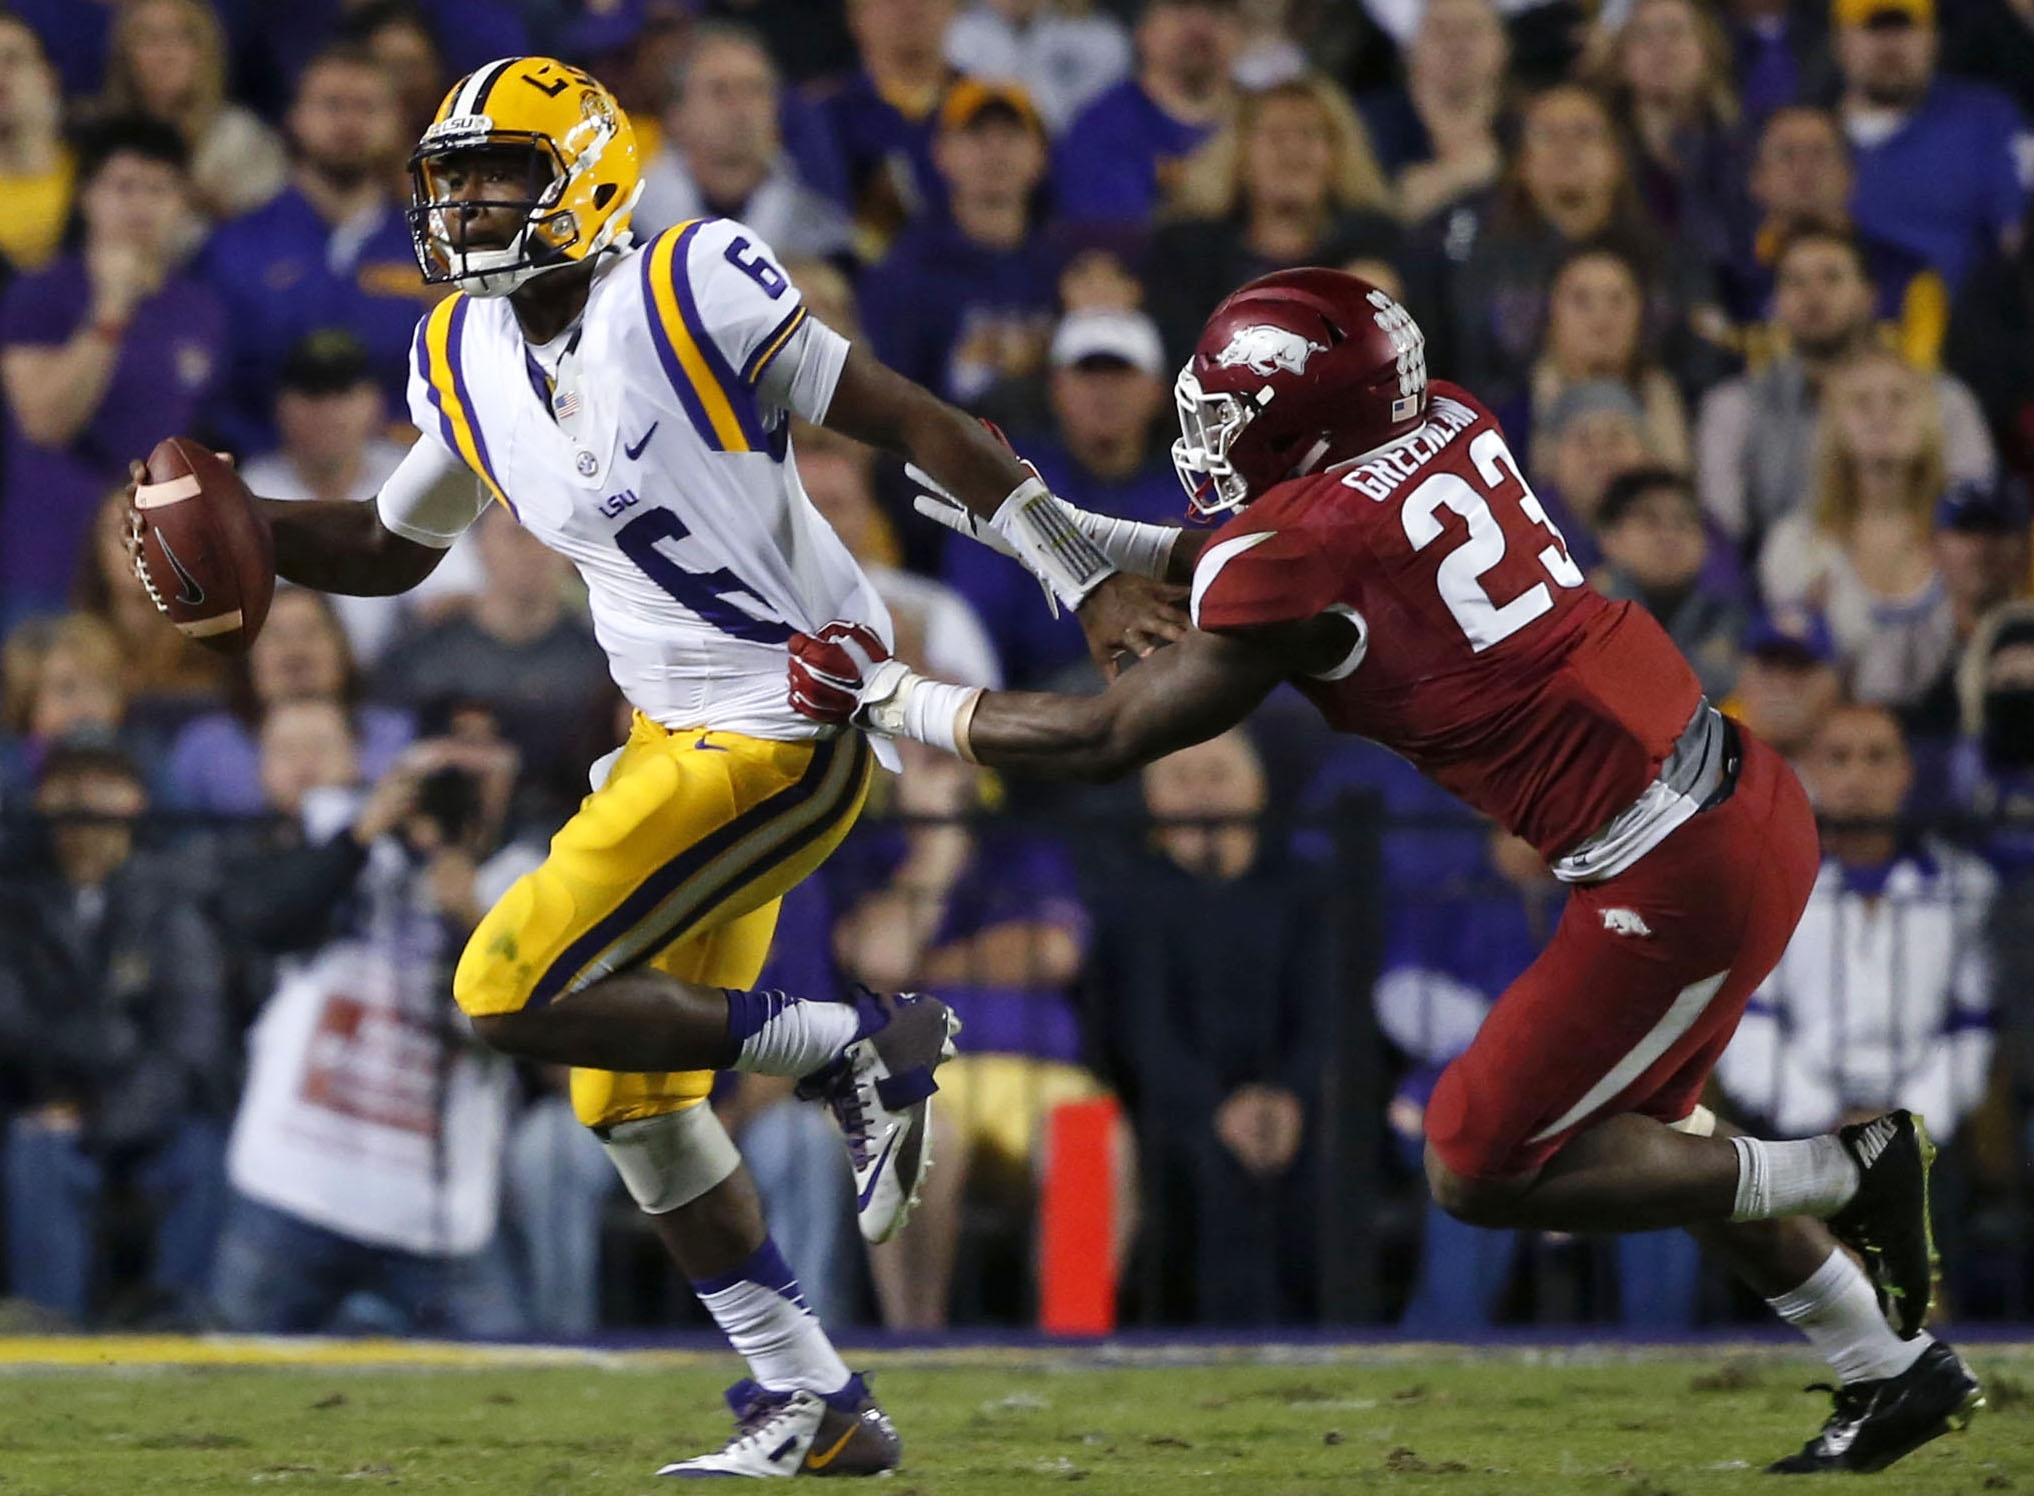 LSU quarterback Brandon Harris (6) scrambles to avoid Arkansas linebacker Dre Greenlaw (23) in the first half of an NCAA college football game in Baton Rouge, La., Saturday, Nov. 14, 2015. Harris fumbled on the play setting up an Arkansas touchdown.  (AP